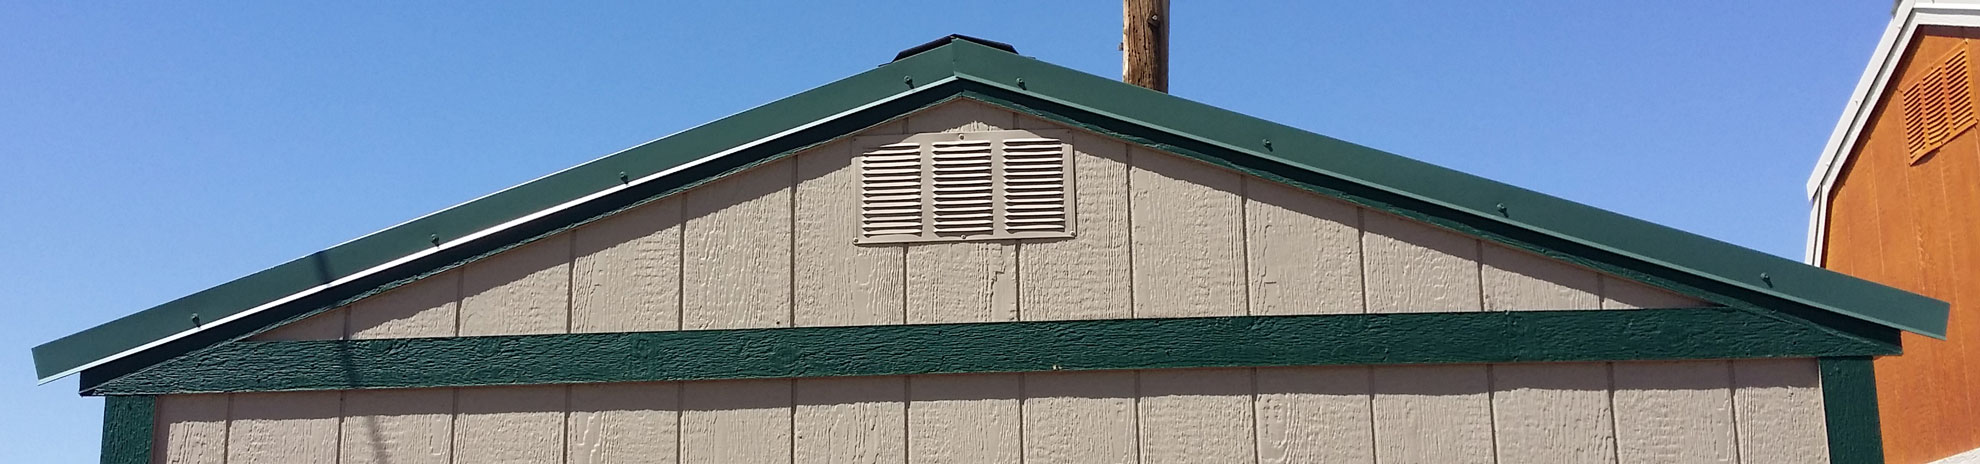 Superior Gable End Trim Detail